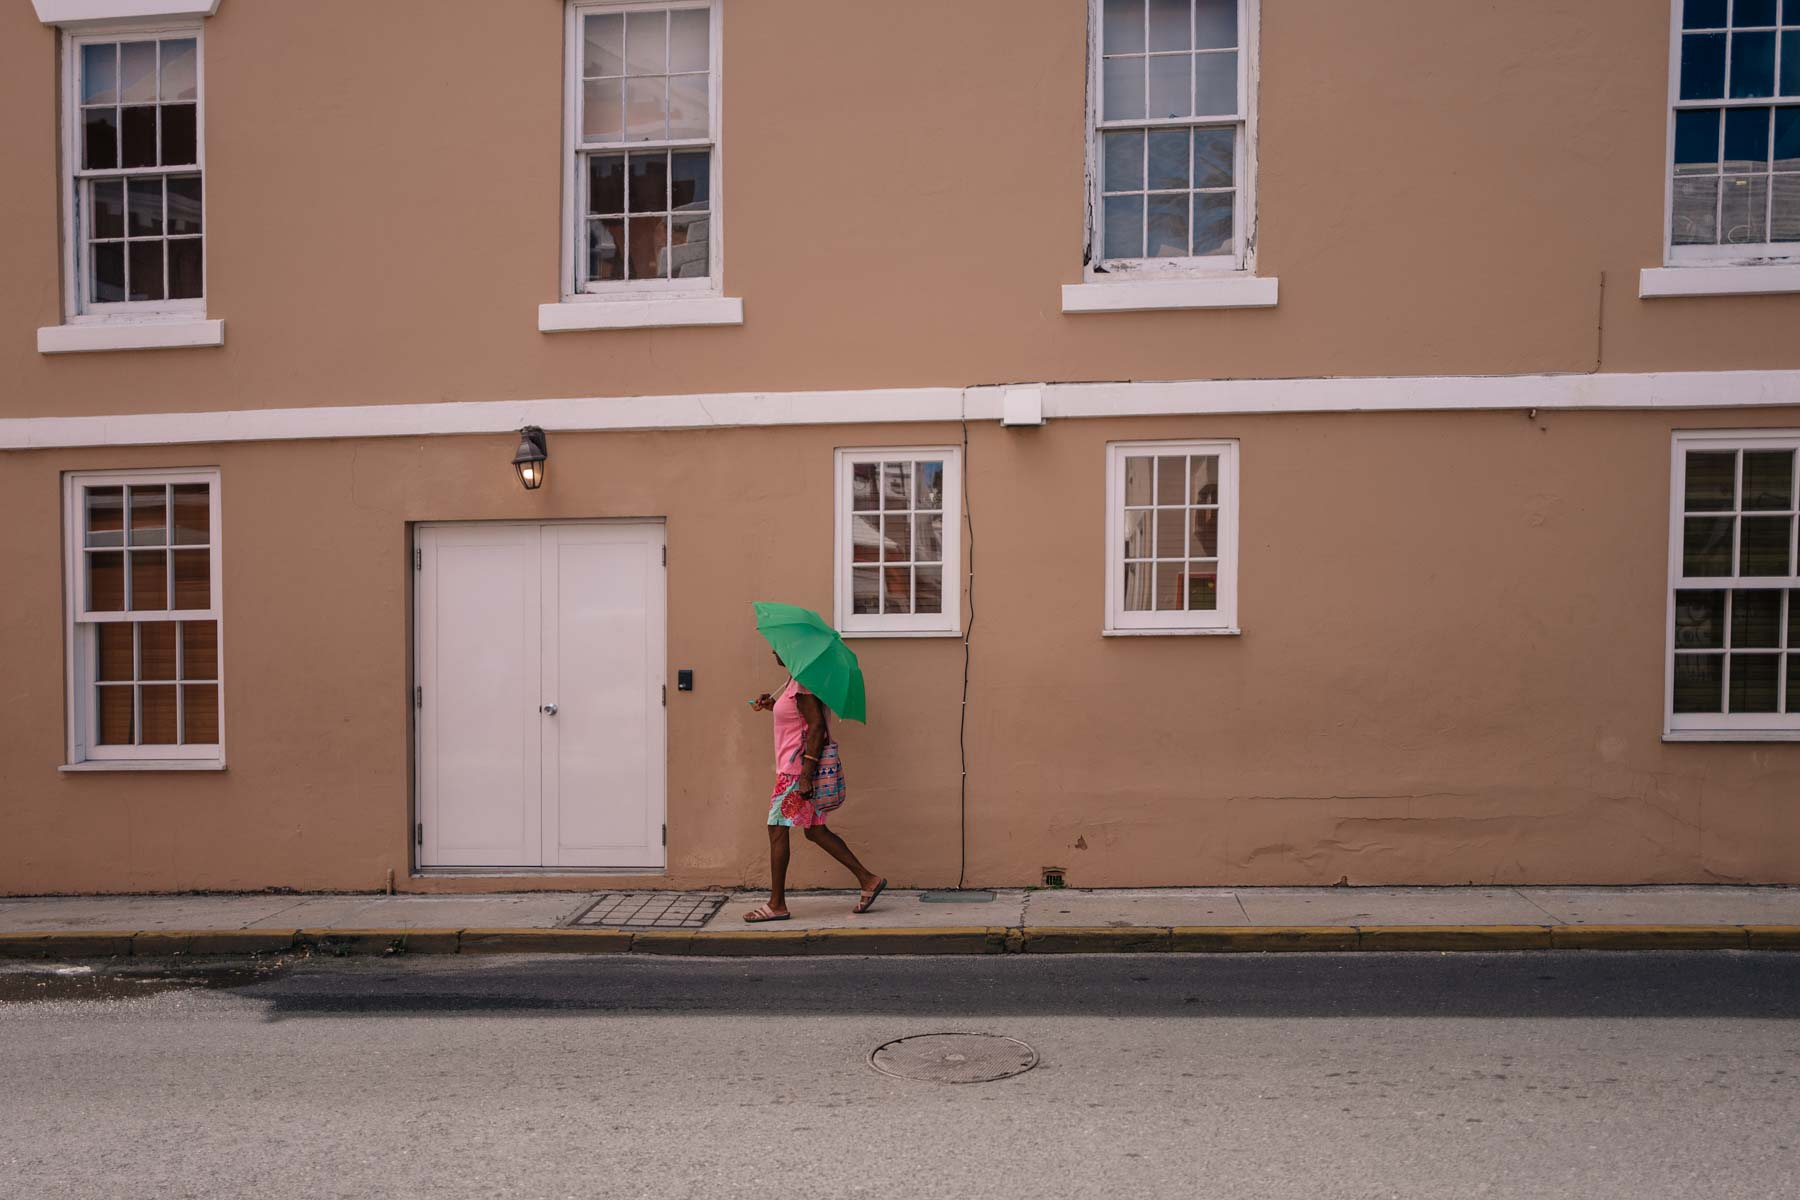 A local woman in Saint George Bermuda